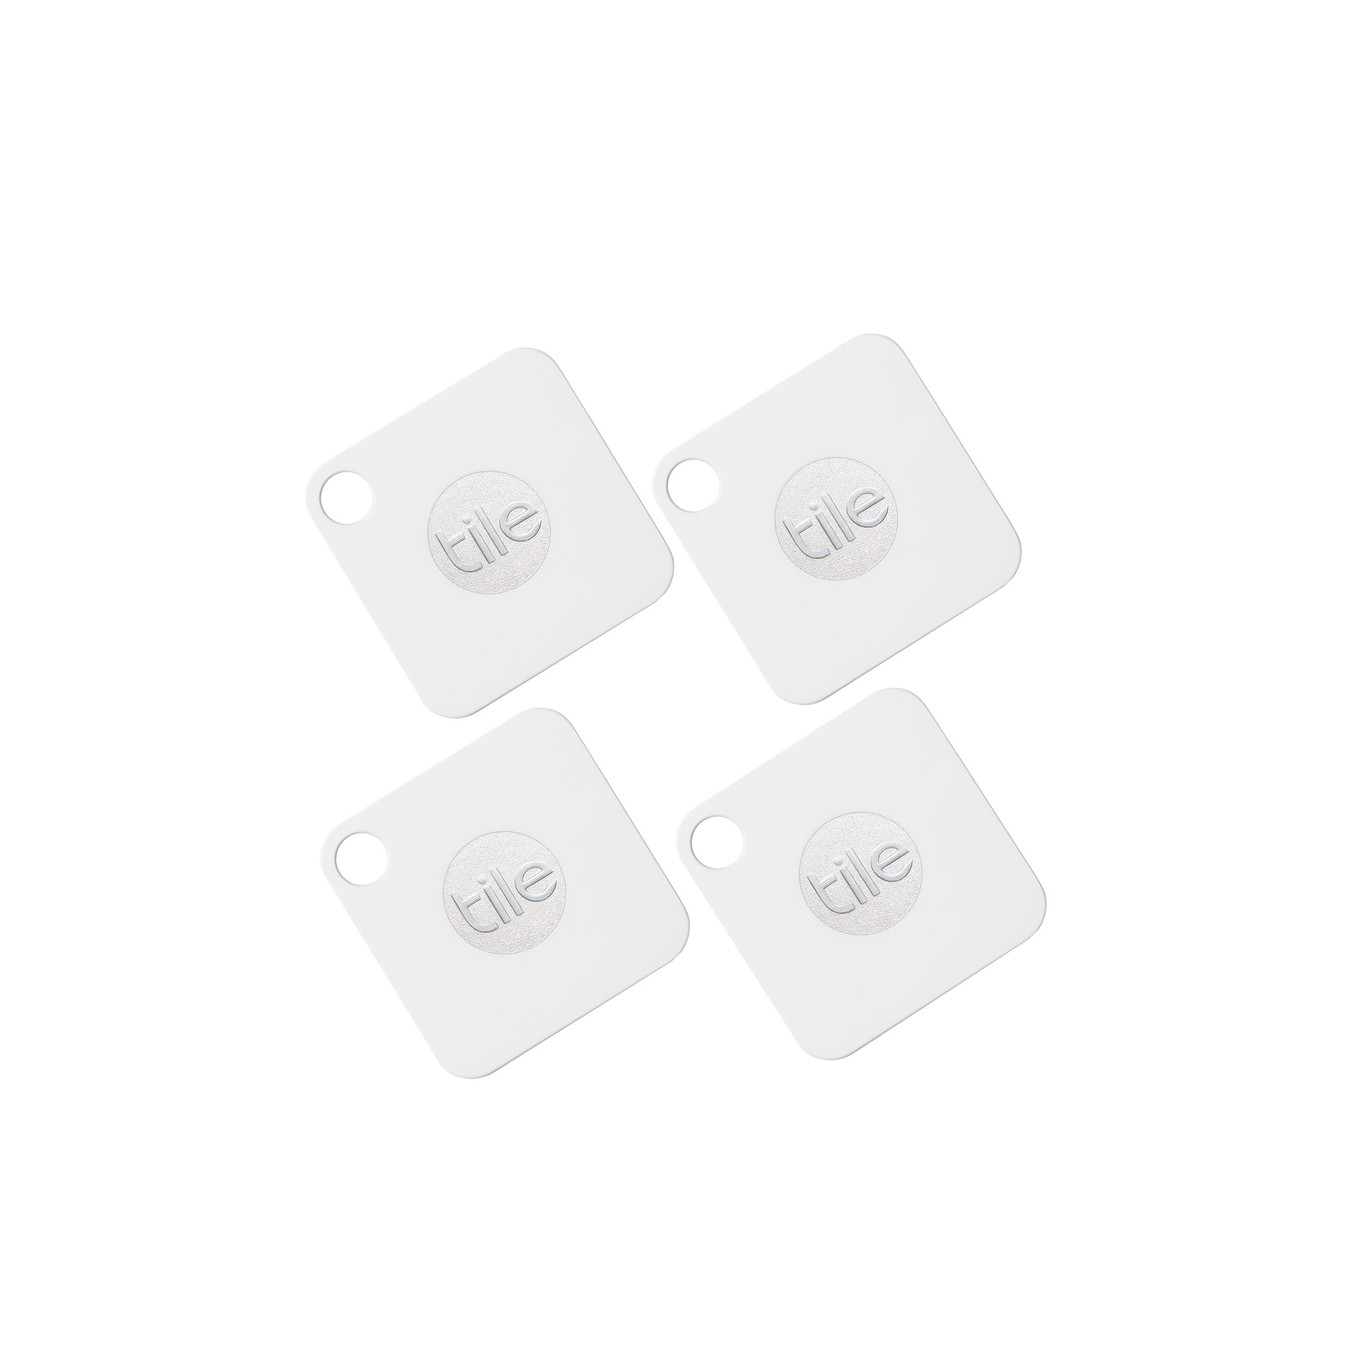 tileMate Bluetooth Phone Item Finder 4 Pack